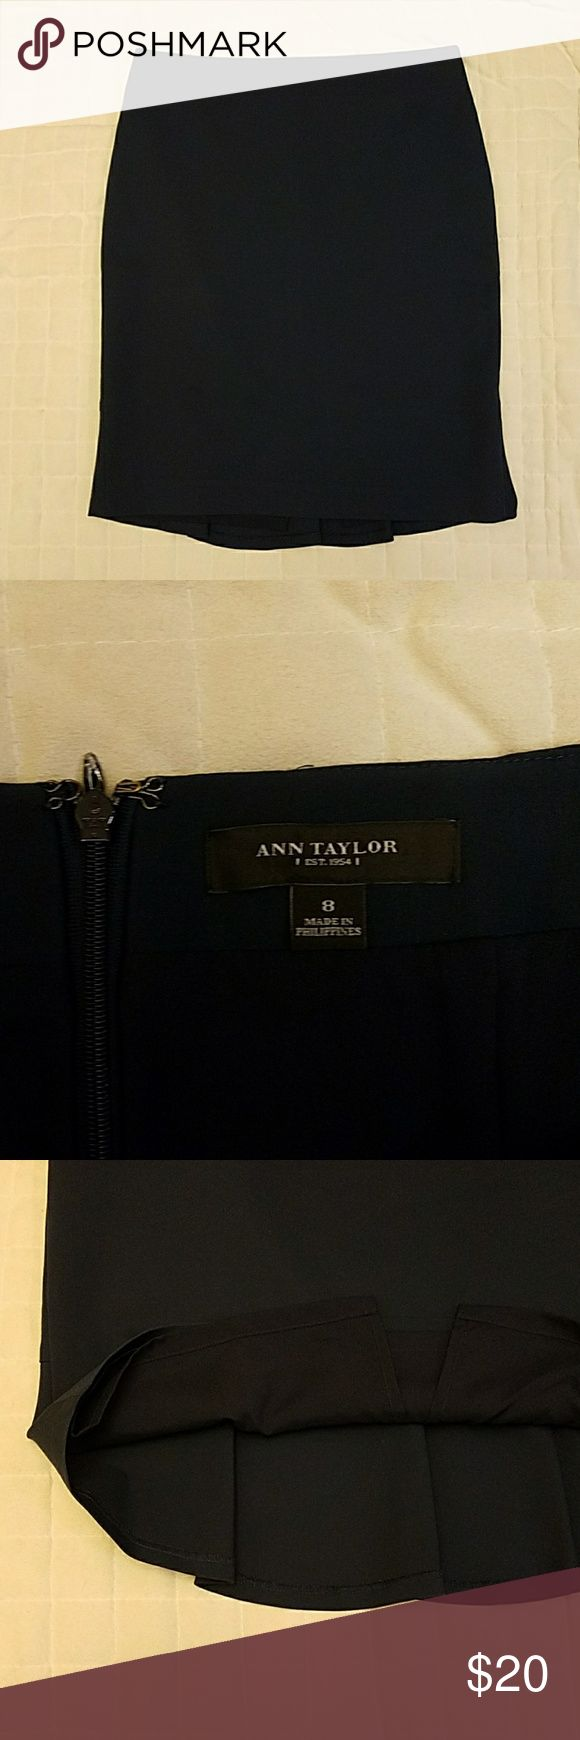 """Ann Taylor Navy Pencil Skirt Beautiful deep navy blue Ann Taylor pencil skirt.  Back boasts an adorable ruffle, adding little bit of fun to a classic wardrobe staple! Fabric is the kind of thick that equals quality; no show-through, no lines. Excellent addition to your work wardrobe!  15.5"""" top  19 """" waist 19"""" bottom 22"""" length  We are open to all reasonable offers! Ann Taylor Skirts Pencil"""